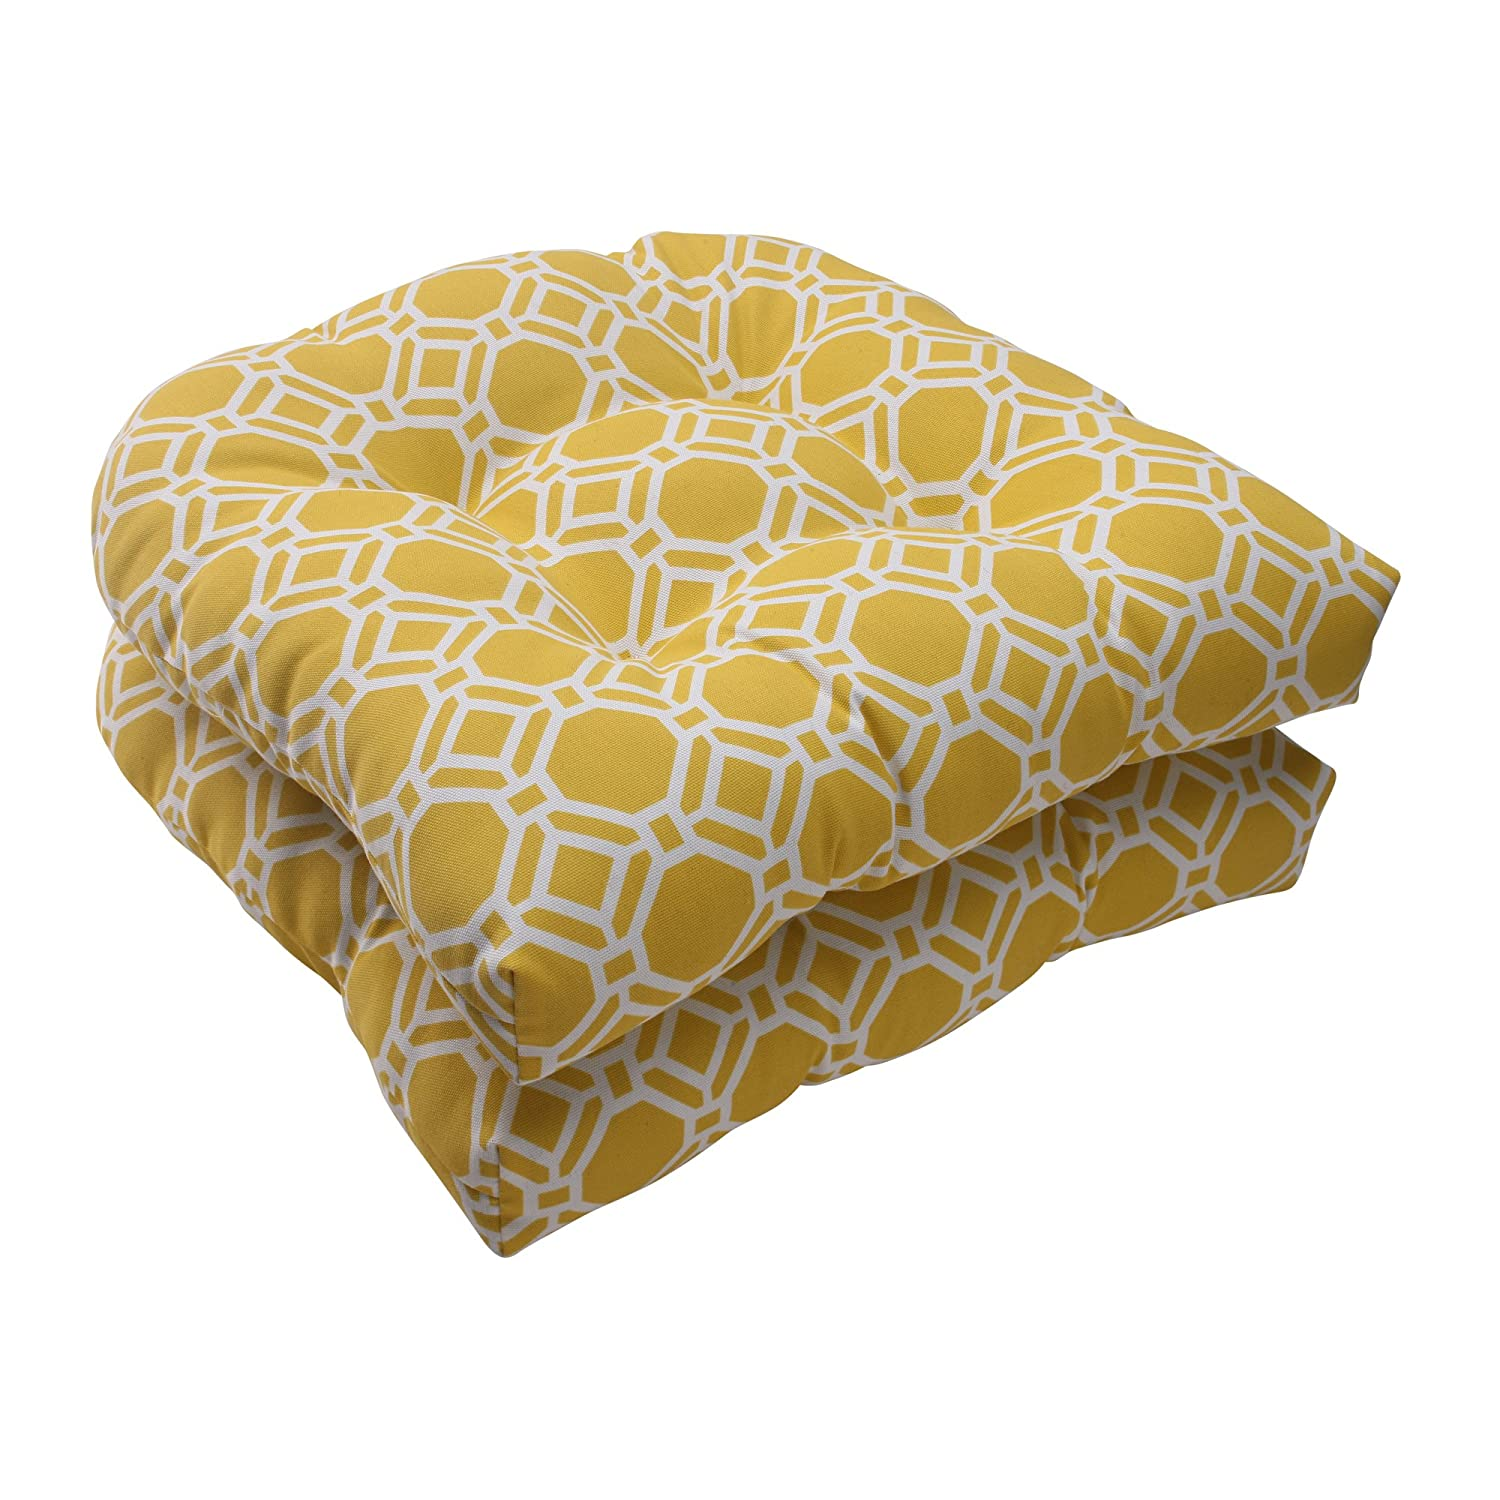 Pillow Perfect Outdoor Rossmere Wicker Seat Cushion, Yellow, Set of 2